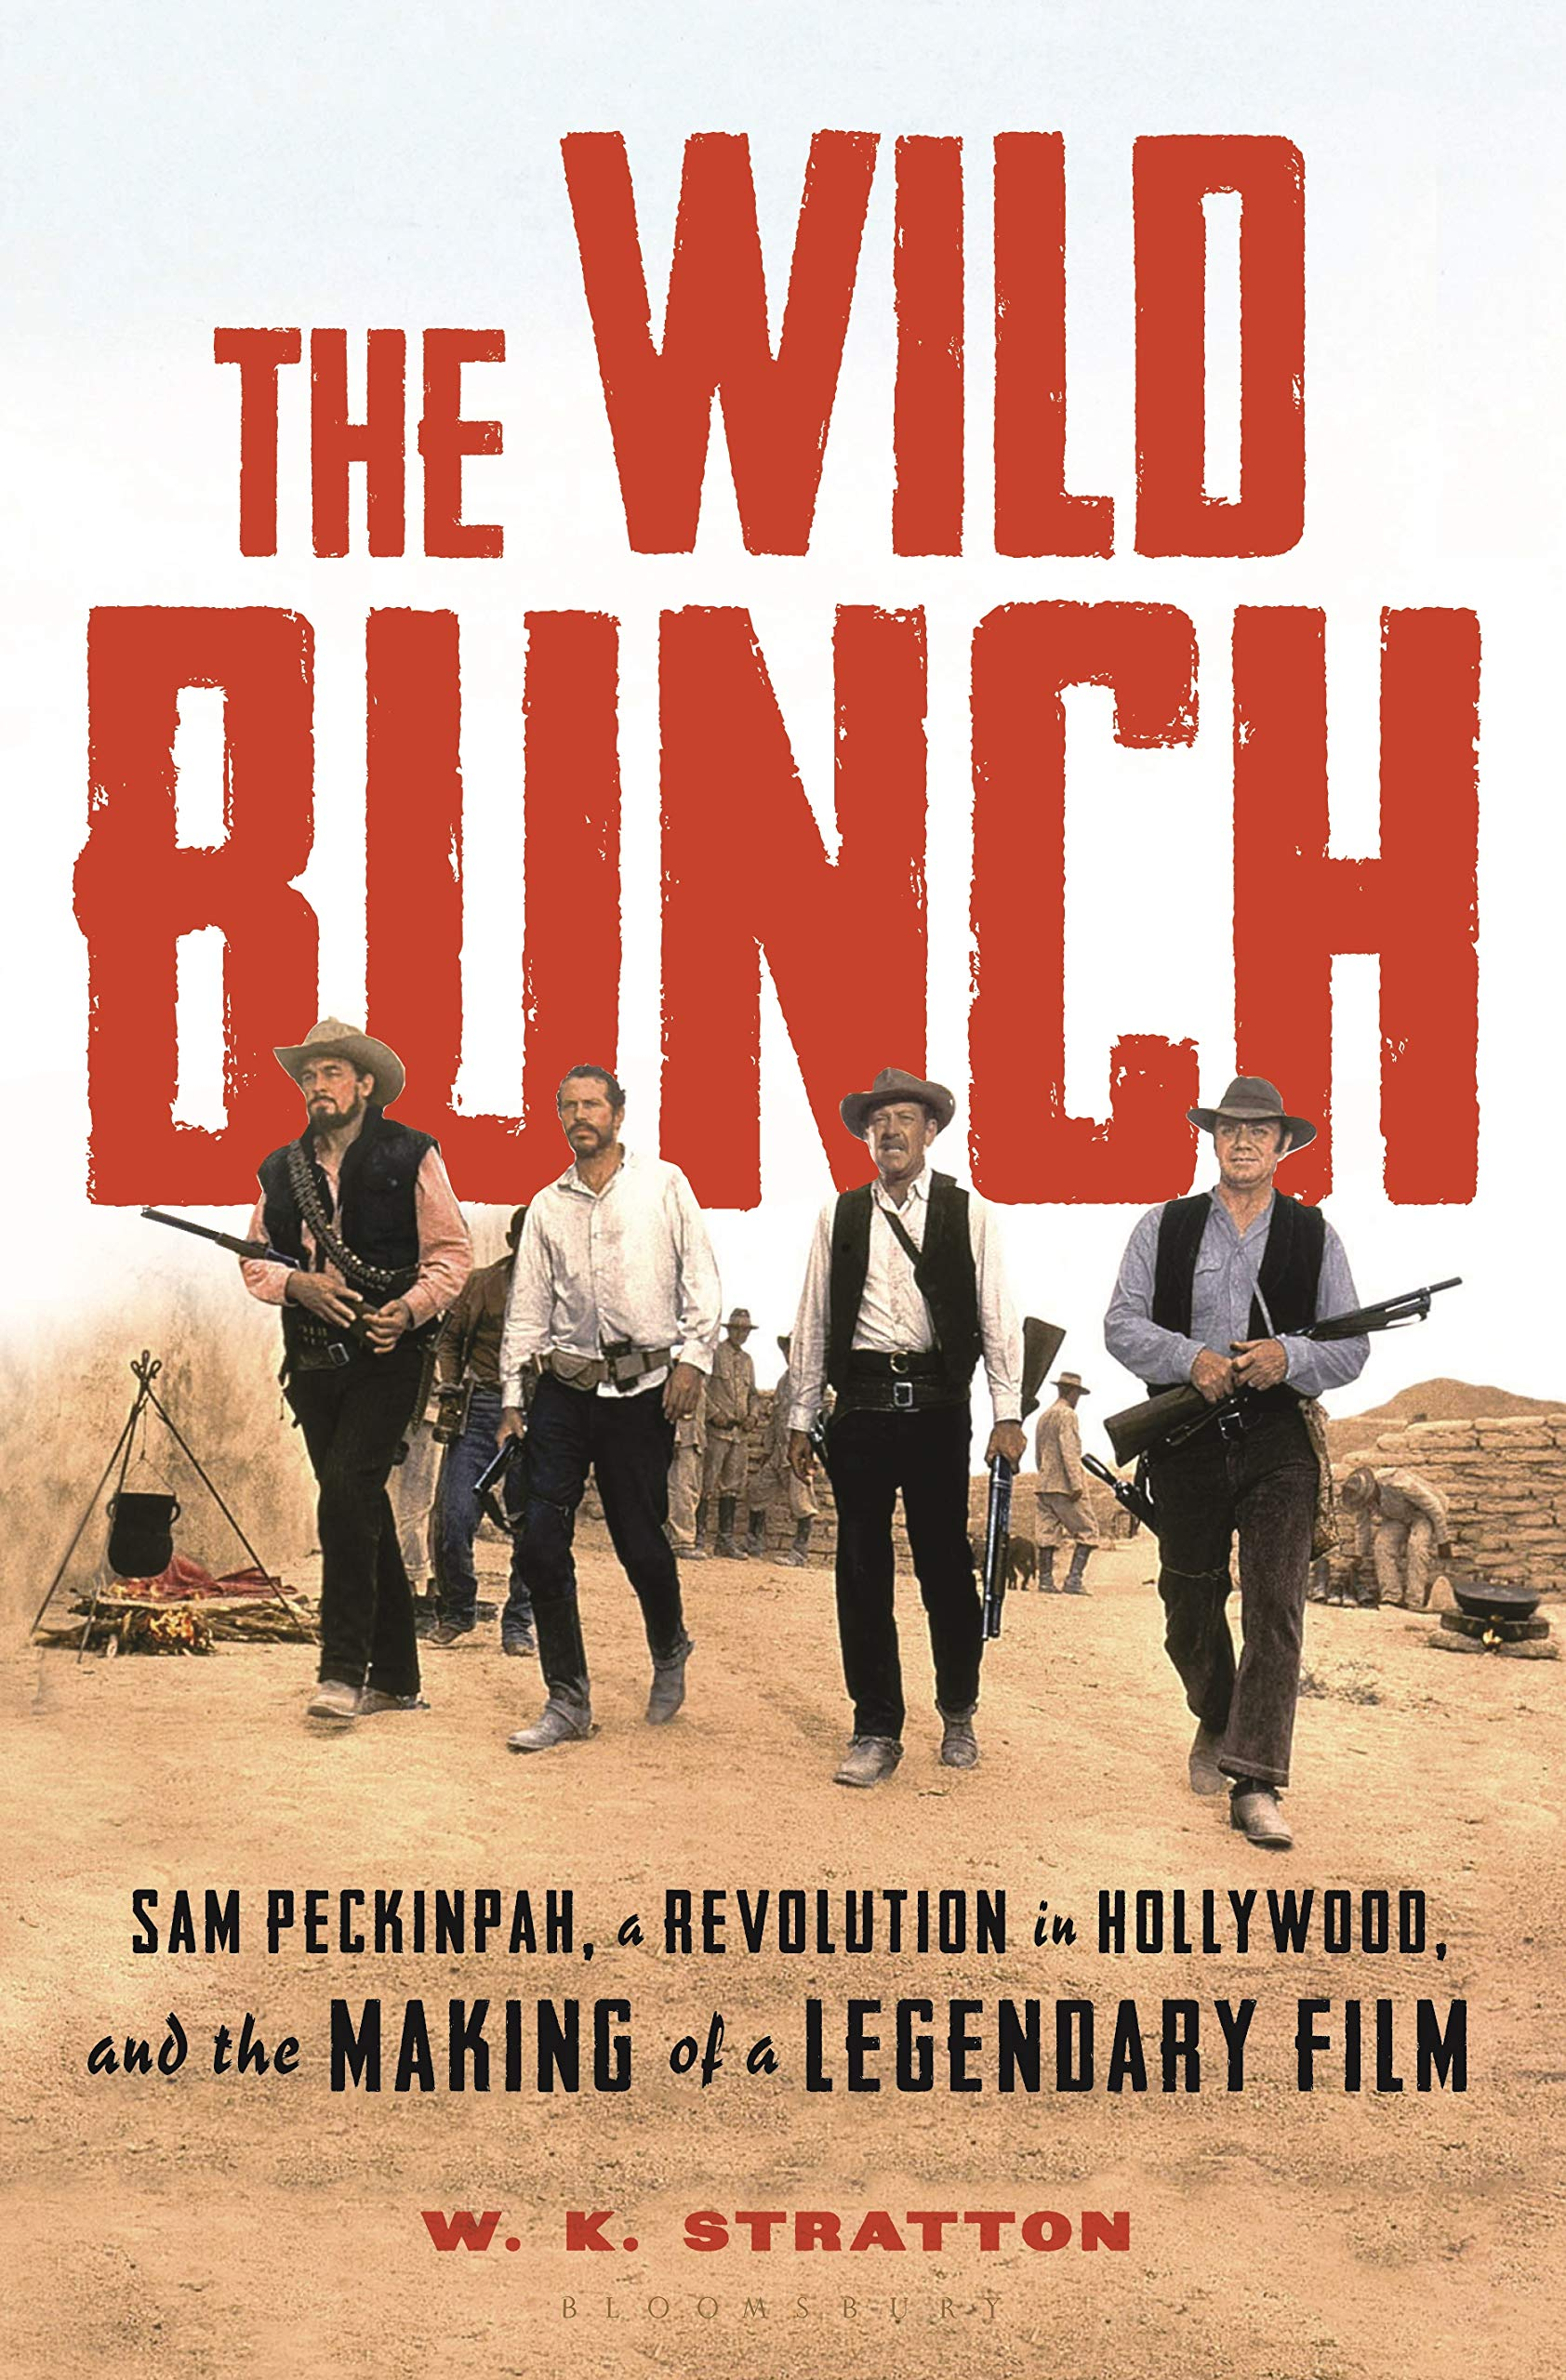 The Wild Bunch: Sam Peckinpah, a Revolution in Hollywood, and the Making of a Legendary Film